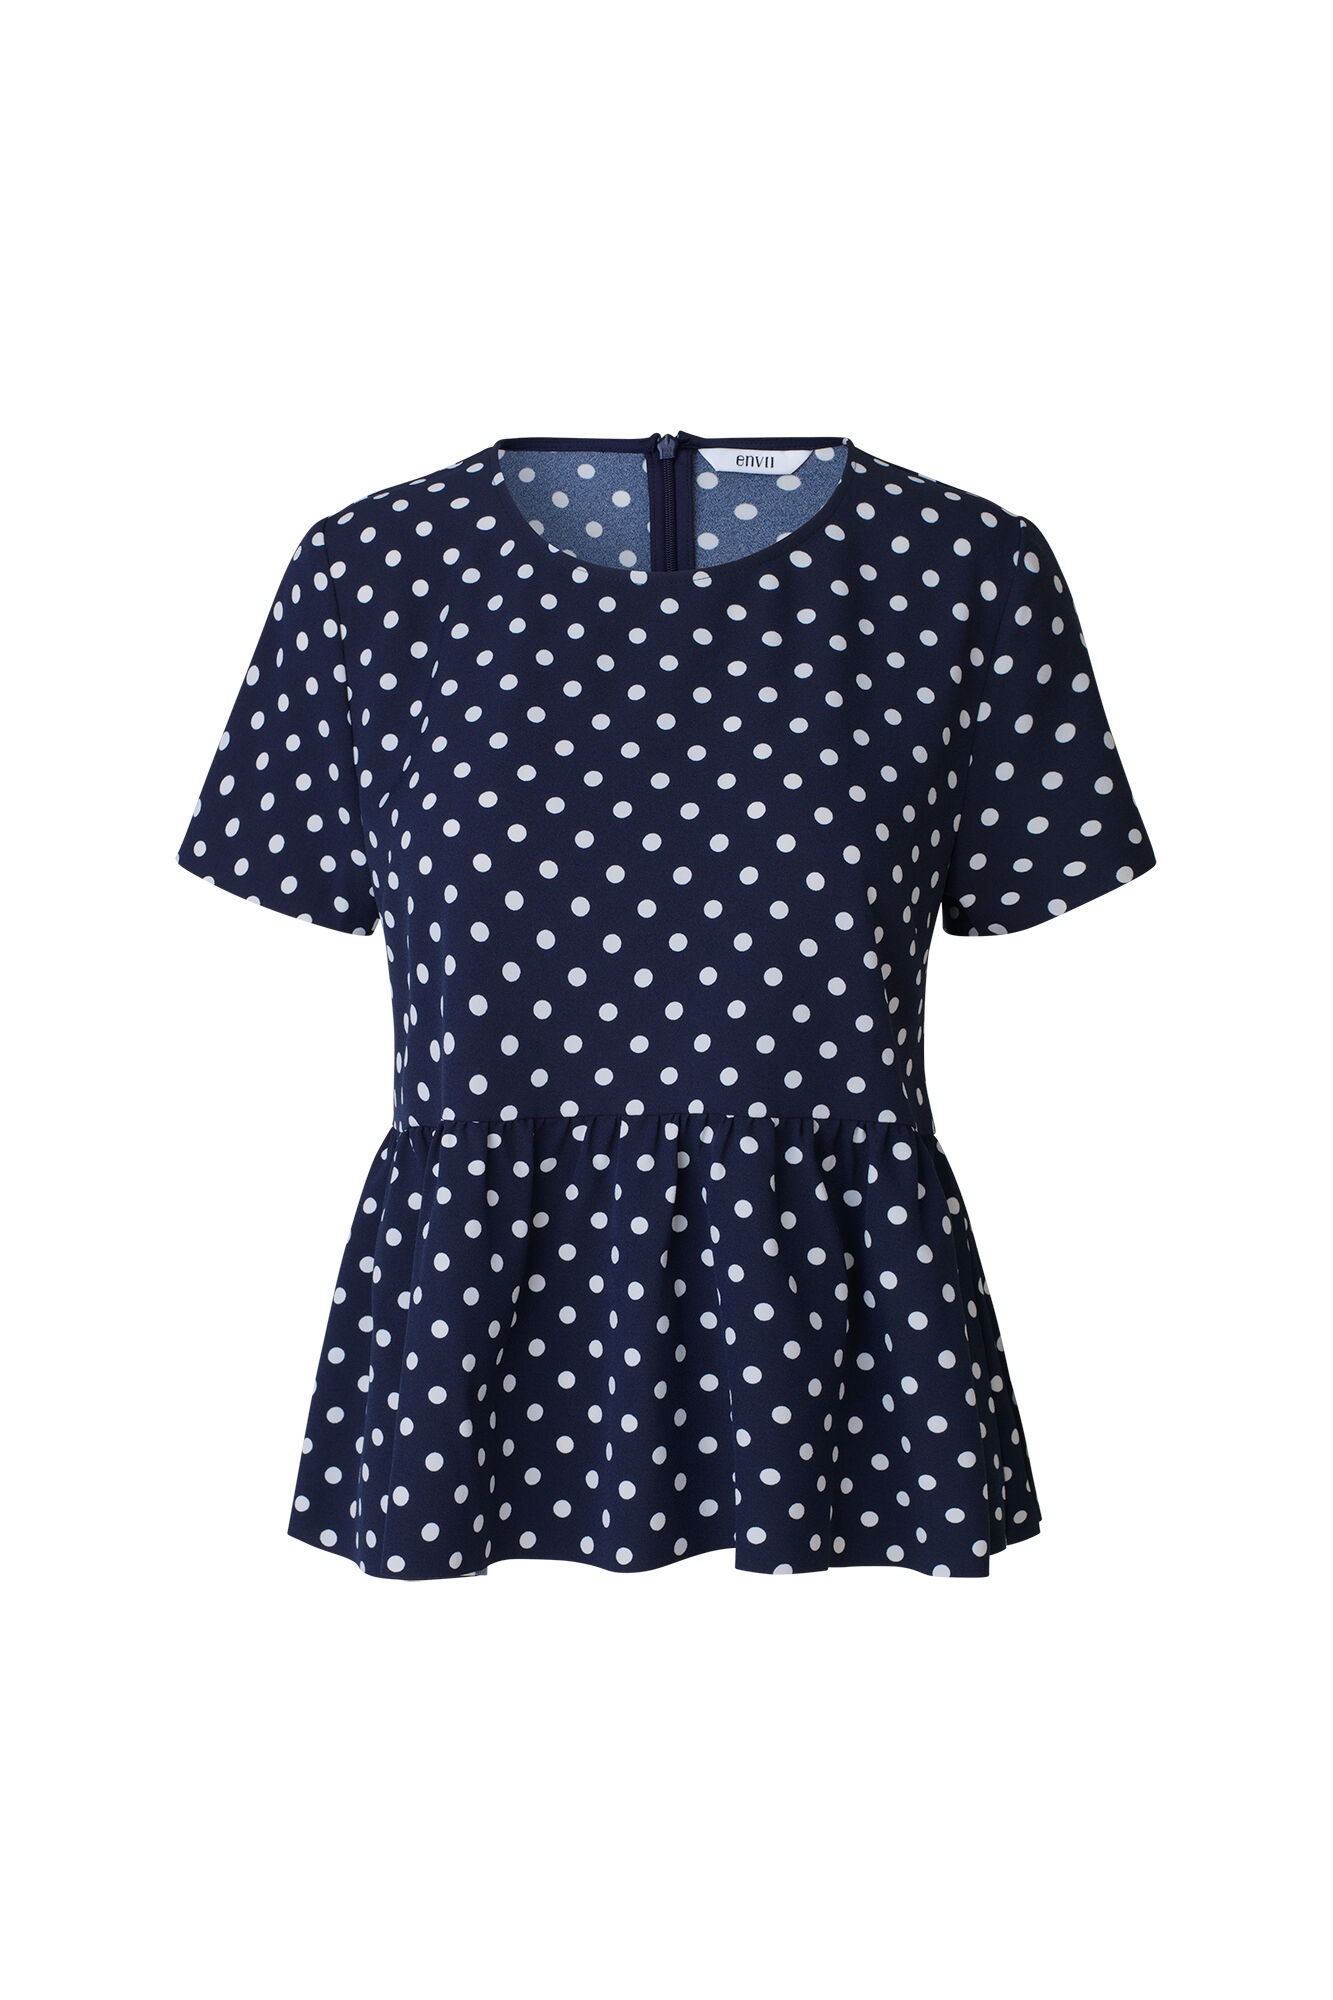 ENSORBET SS TOP AOP 6417, NAVY DOT BIG